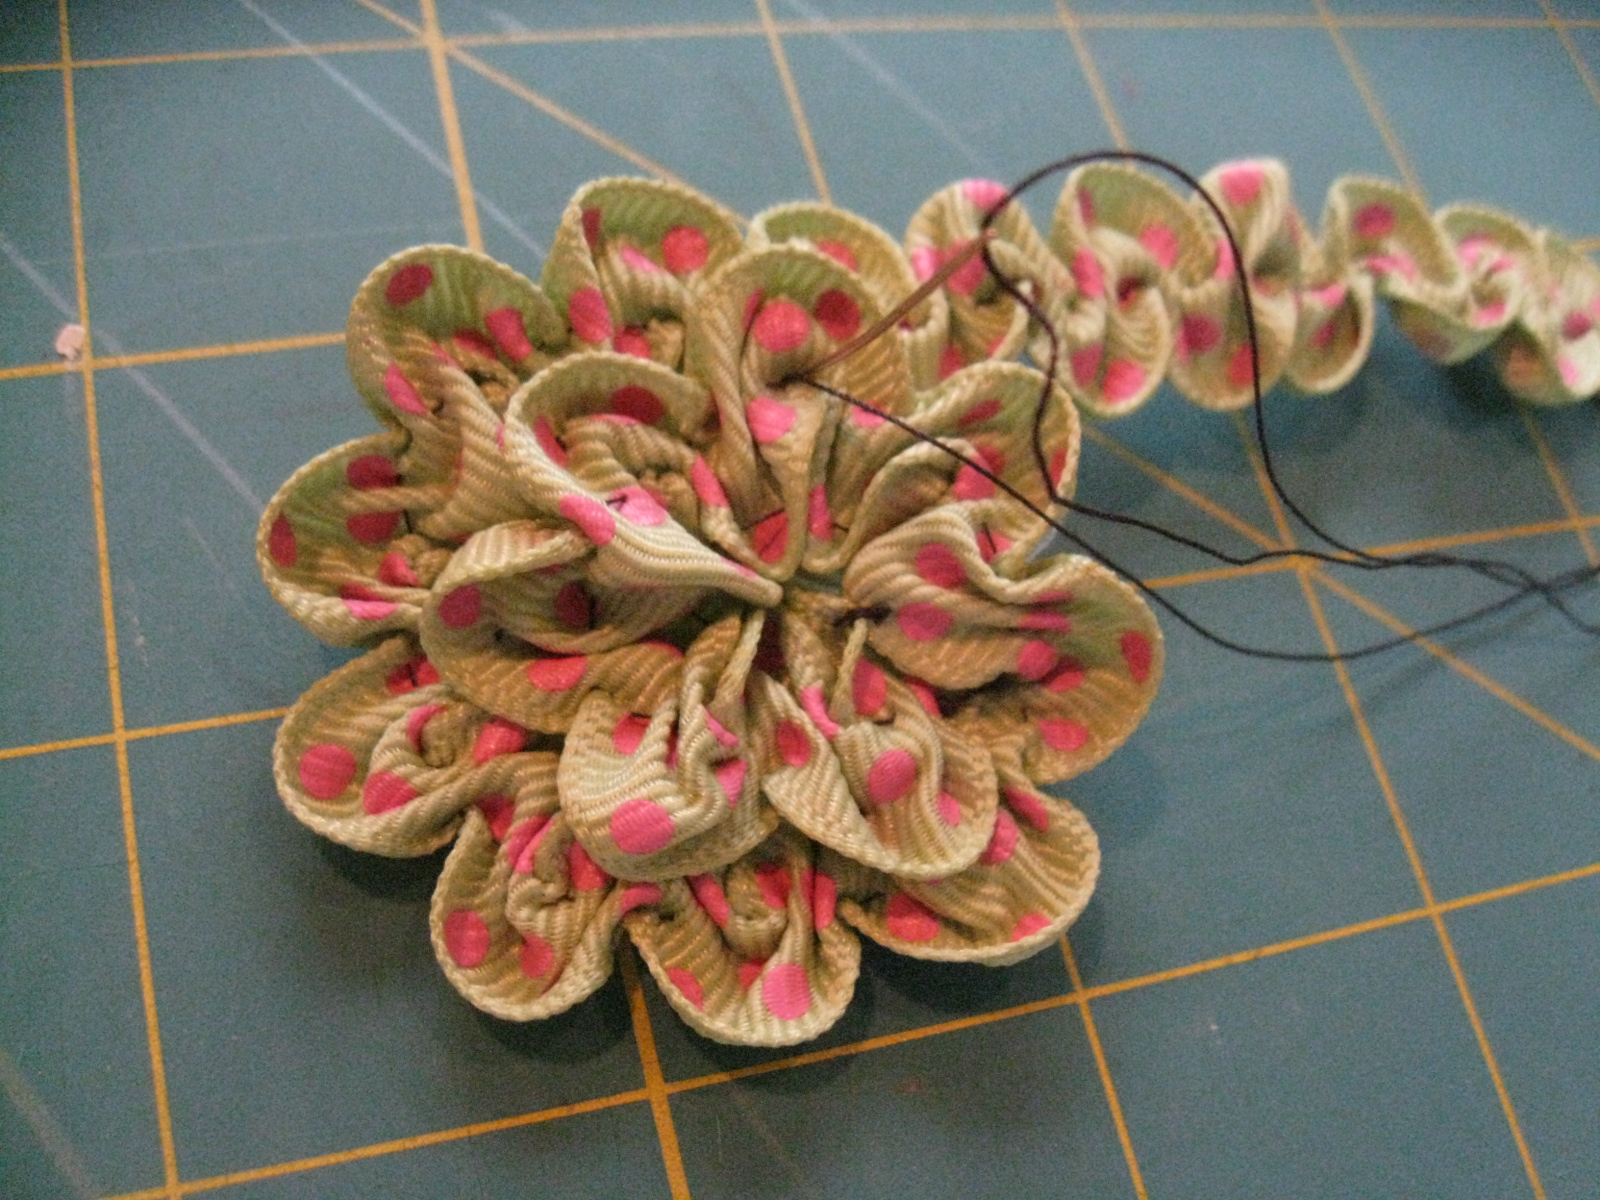 Top 10 Countdown   5  Ruched Ribbon Flower   Nikki  In Stitches     Ruched Flower  Step 8b